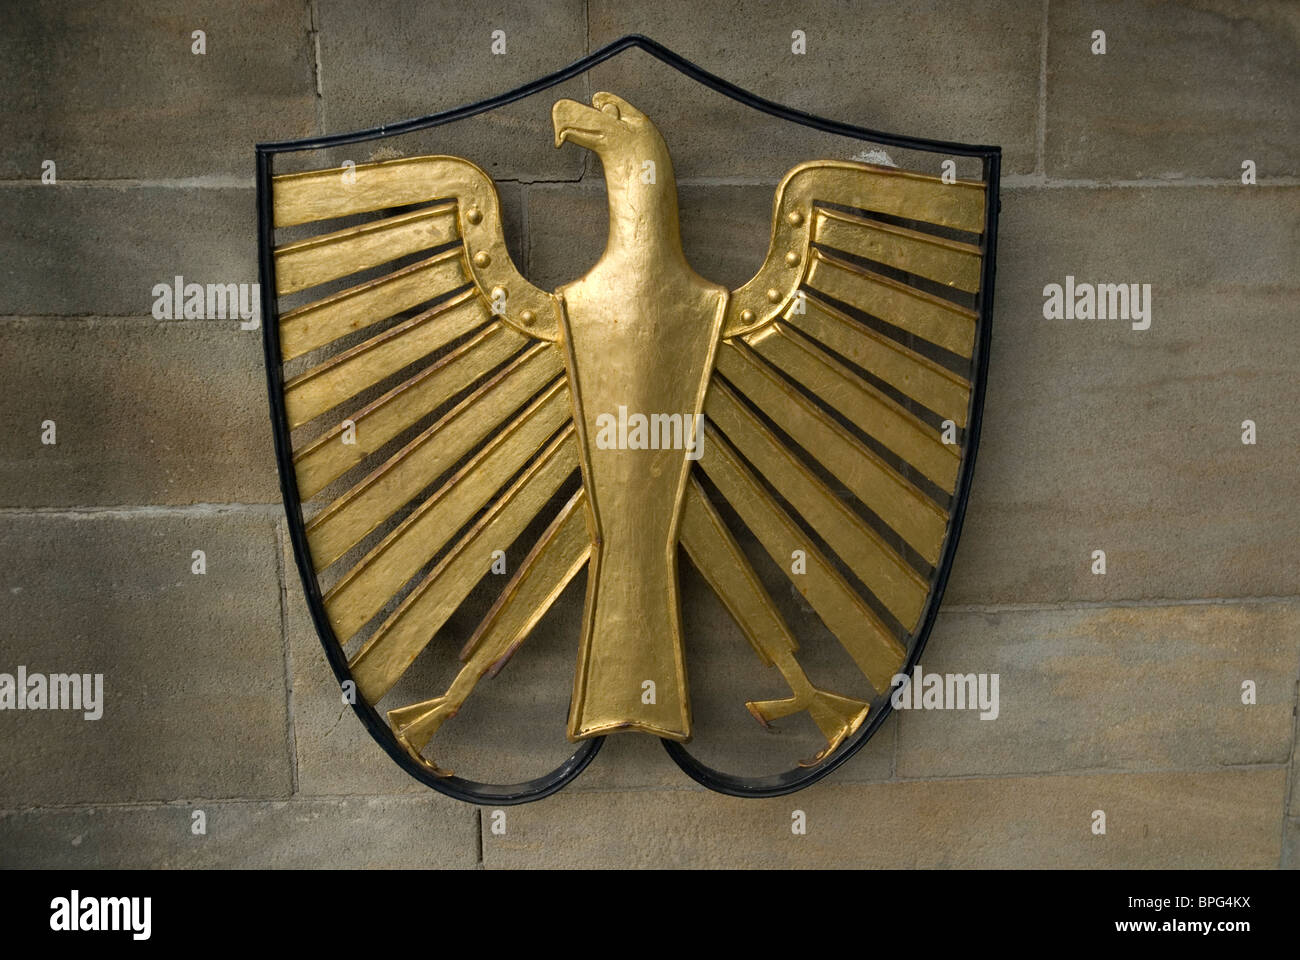 Golden Eagle shield outside the gates to Villa Hammerschmidt the official seat of the German President since 1950. - Stock Image